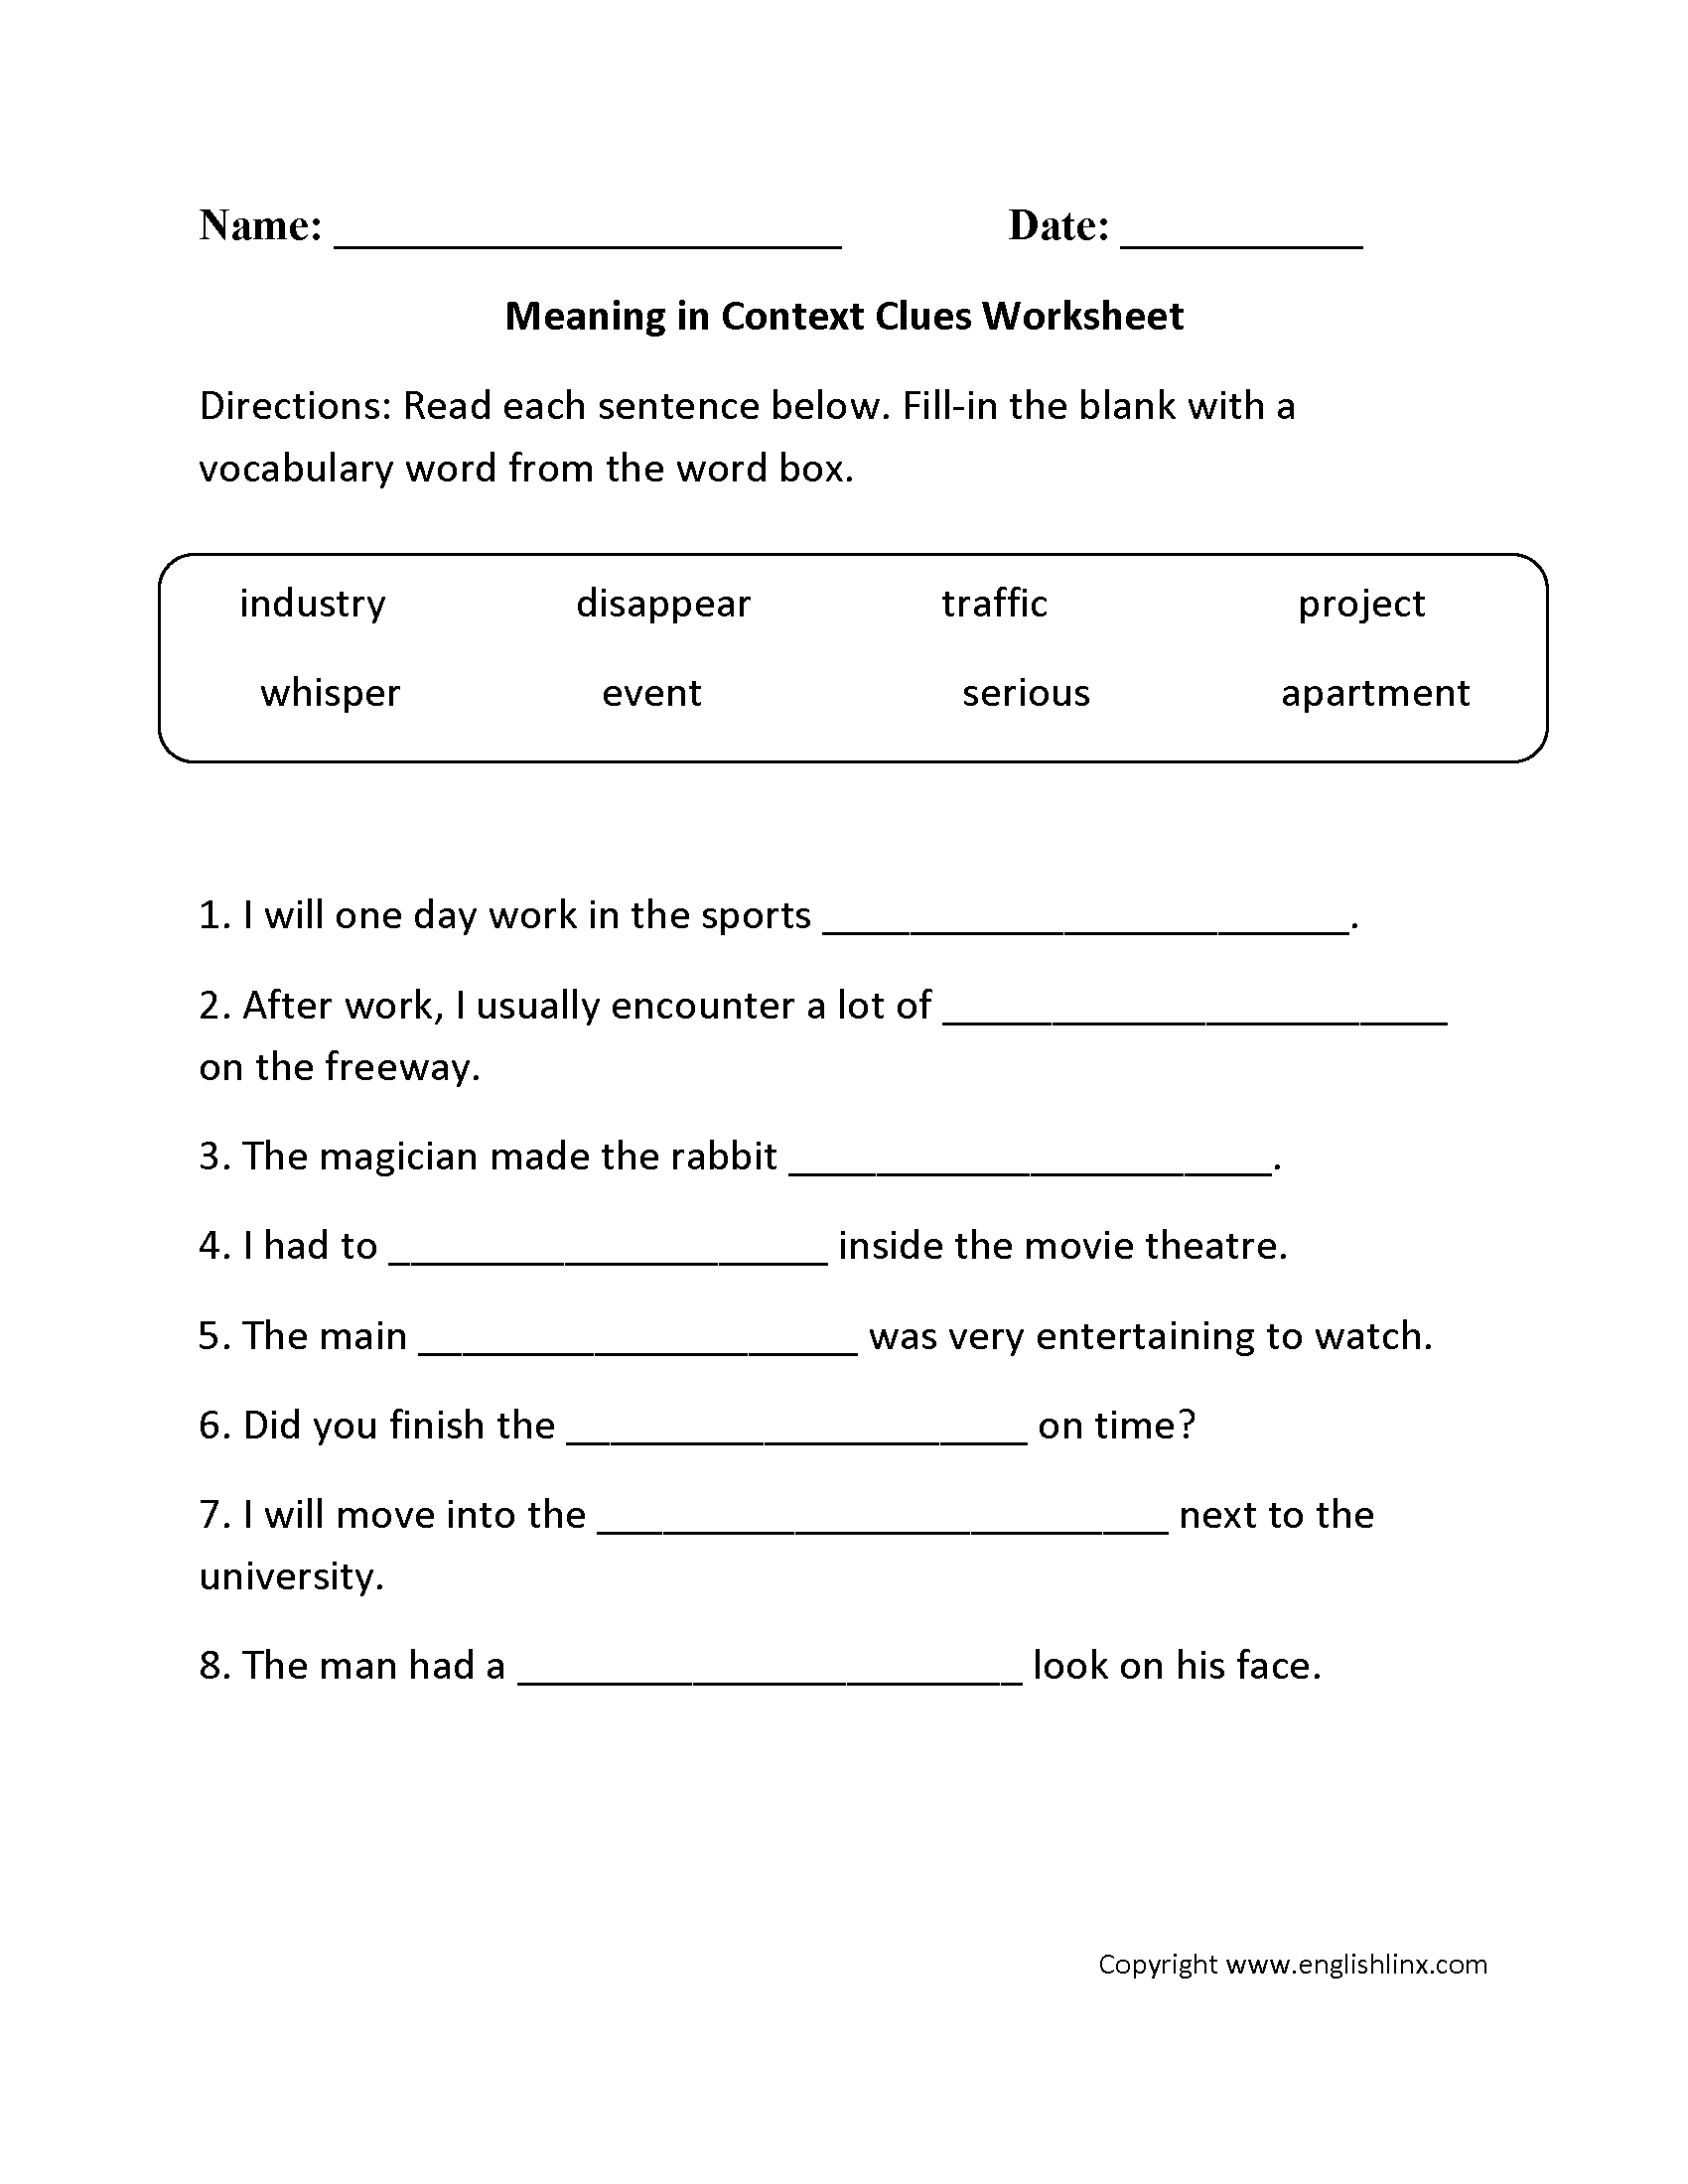 Context clue worksheets for 2nd grade